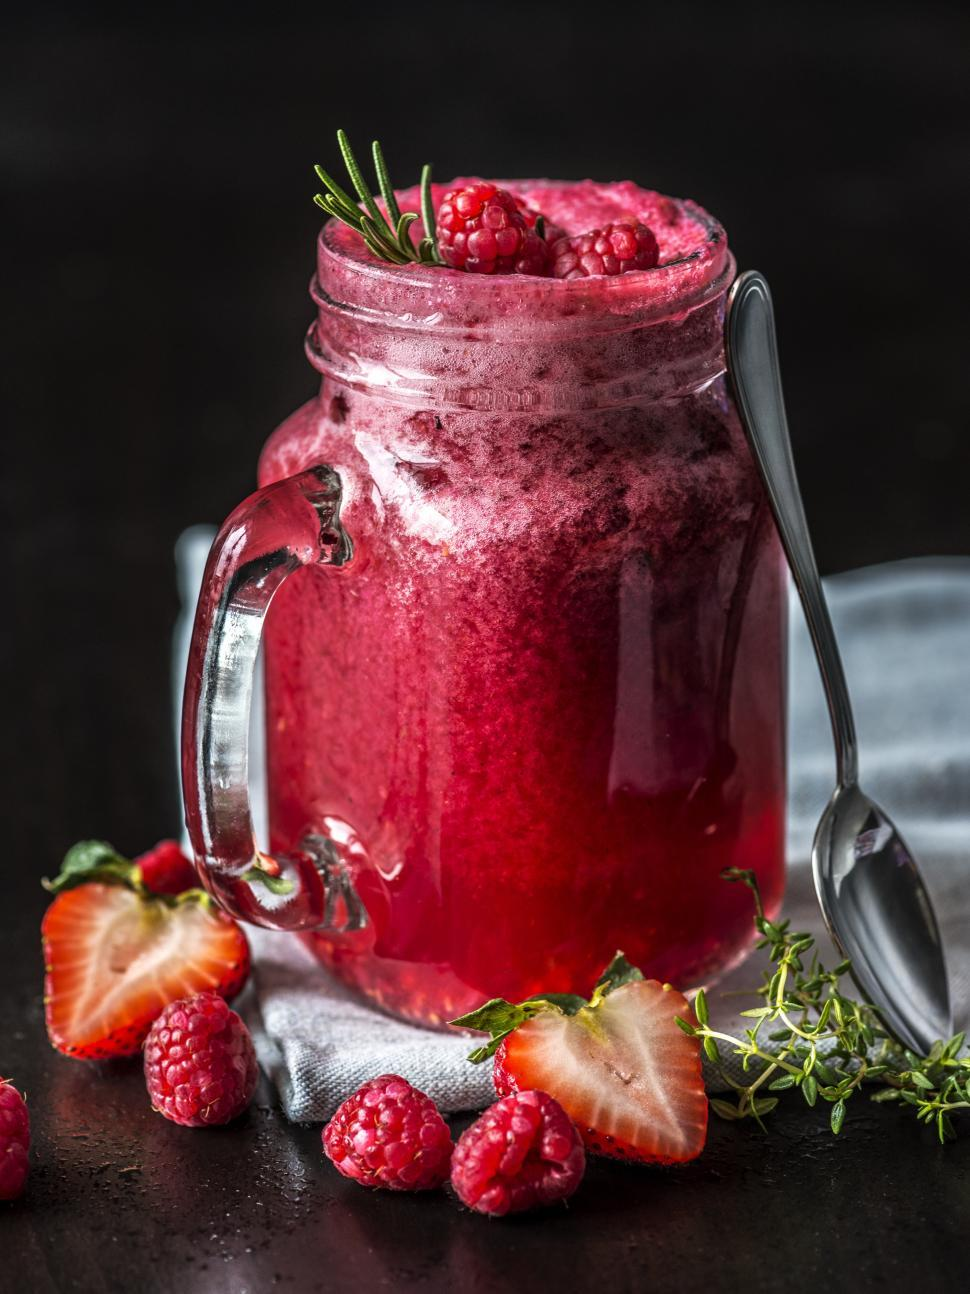 Download Free Stock HD Photo of Strawberry and raspberry smoothie in a jar Online